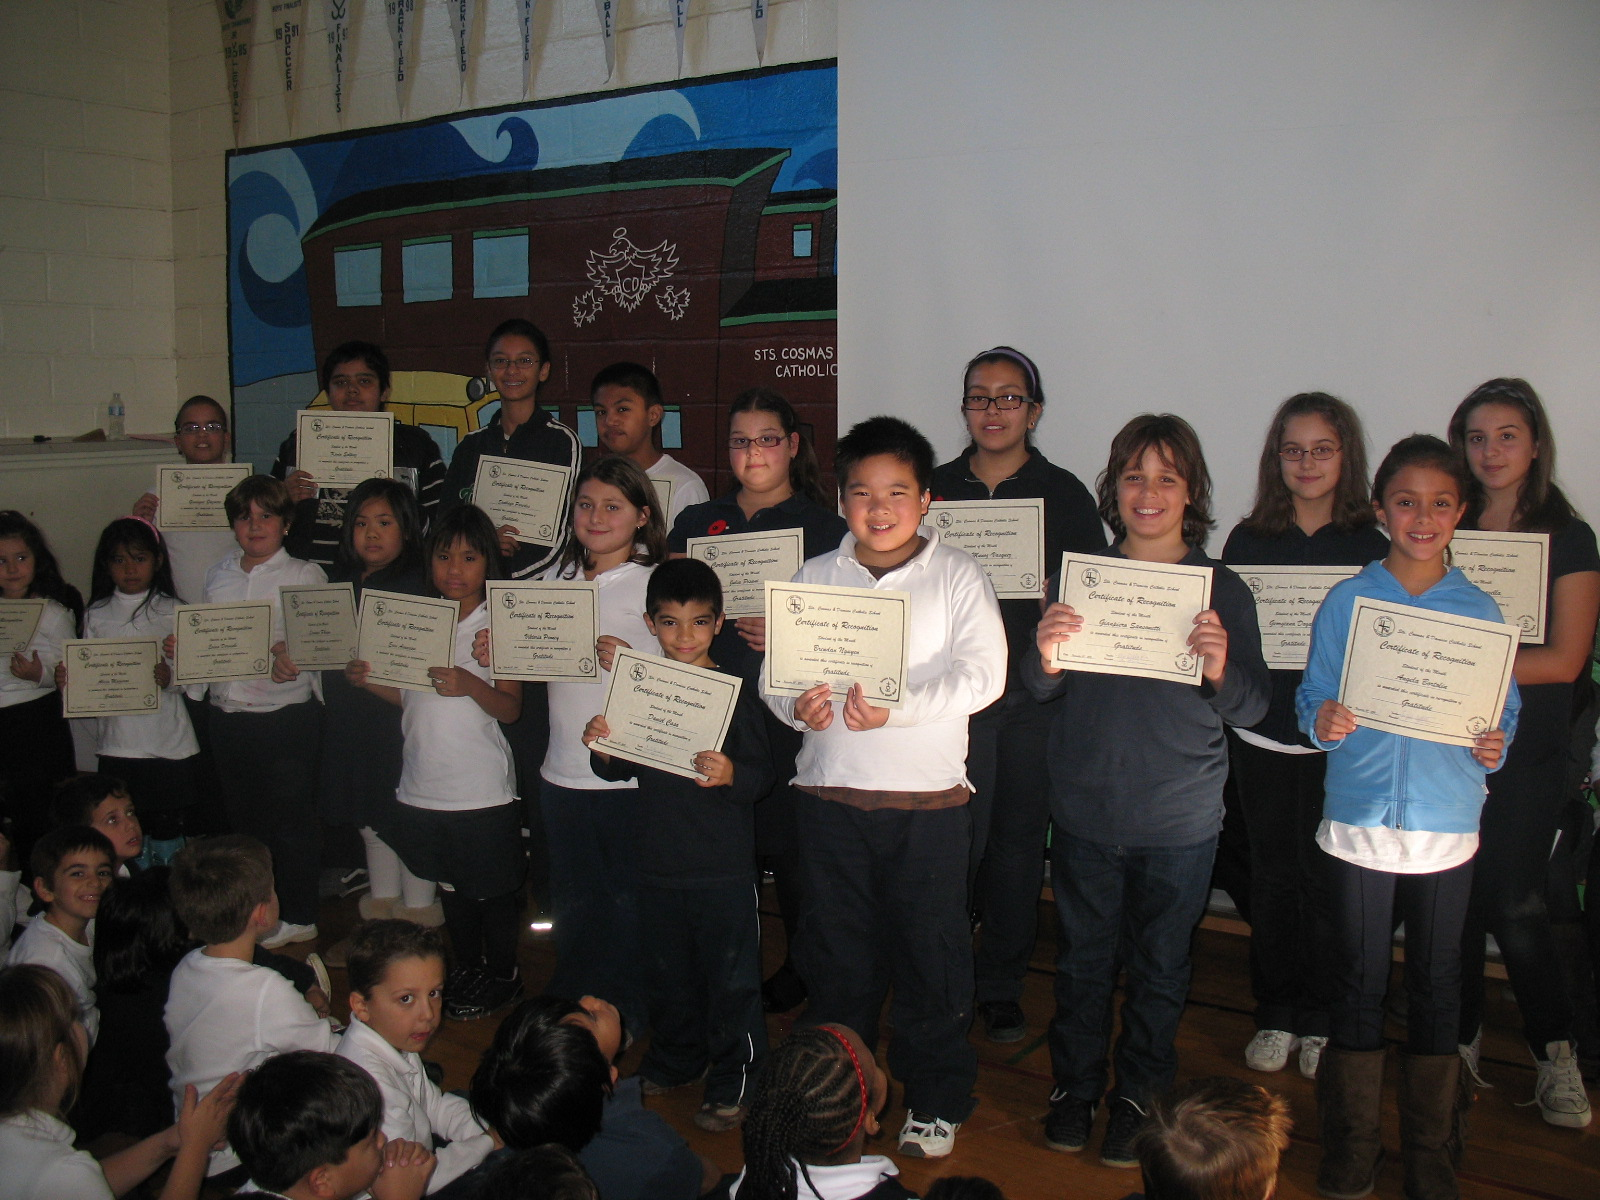 Students receiving Student of the Month Awards